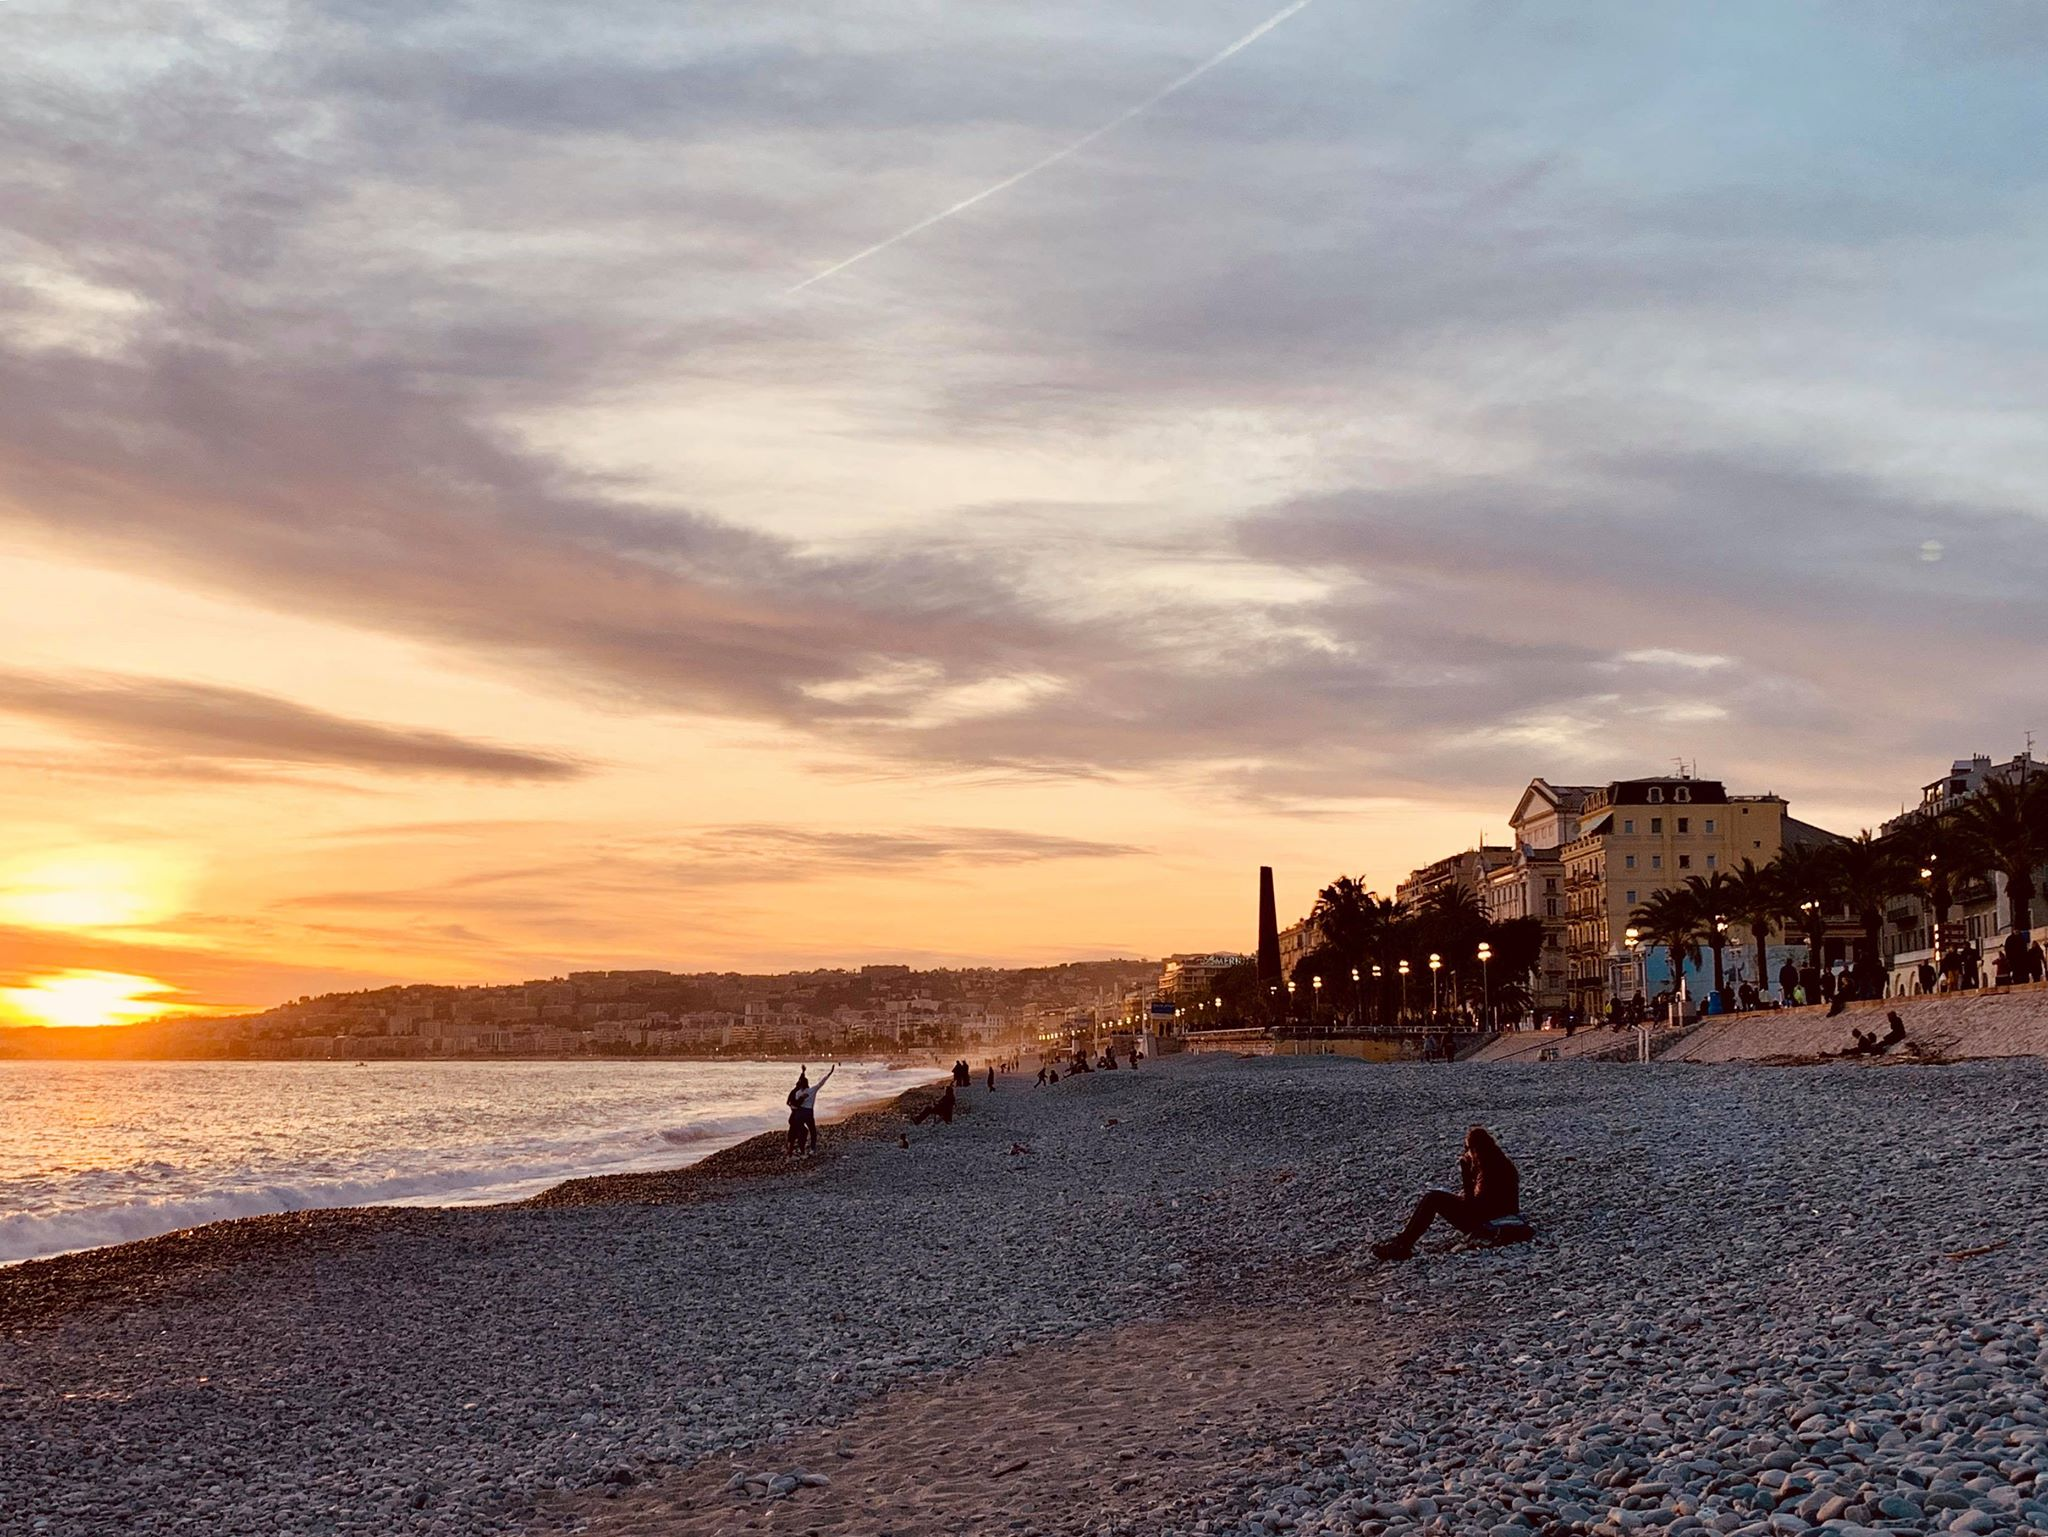 Promenade des Anglais Nice - Credit: Summer Hotel Group